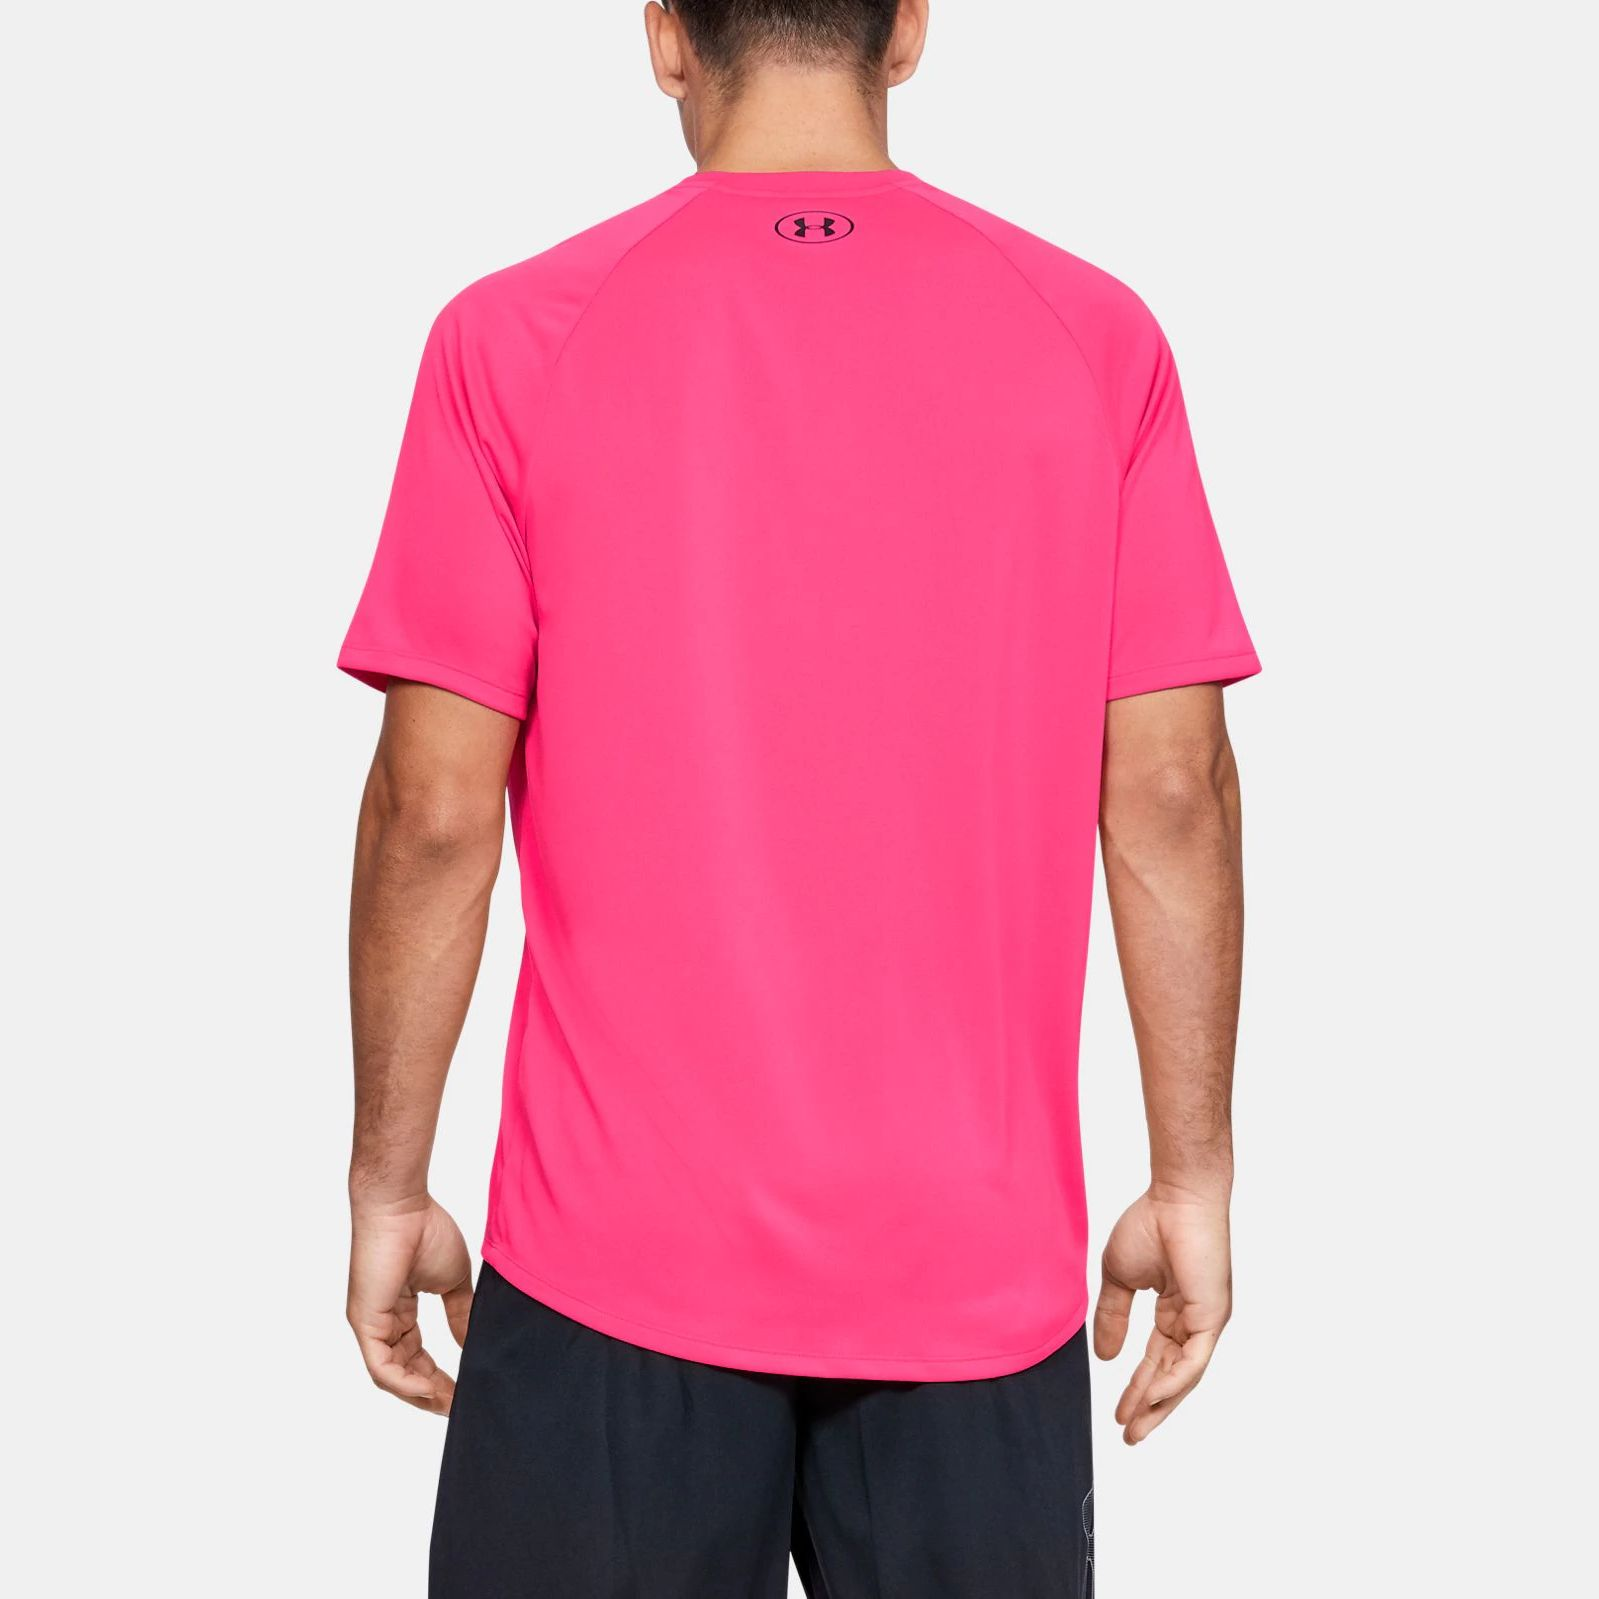 Clothing -  under armour Tech 2.0 6413